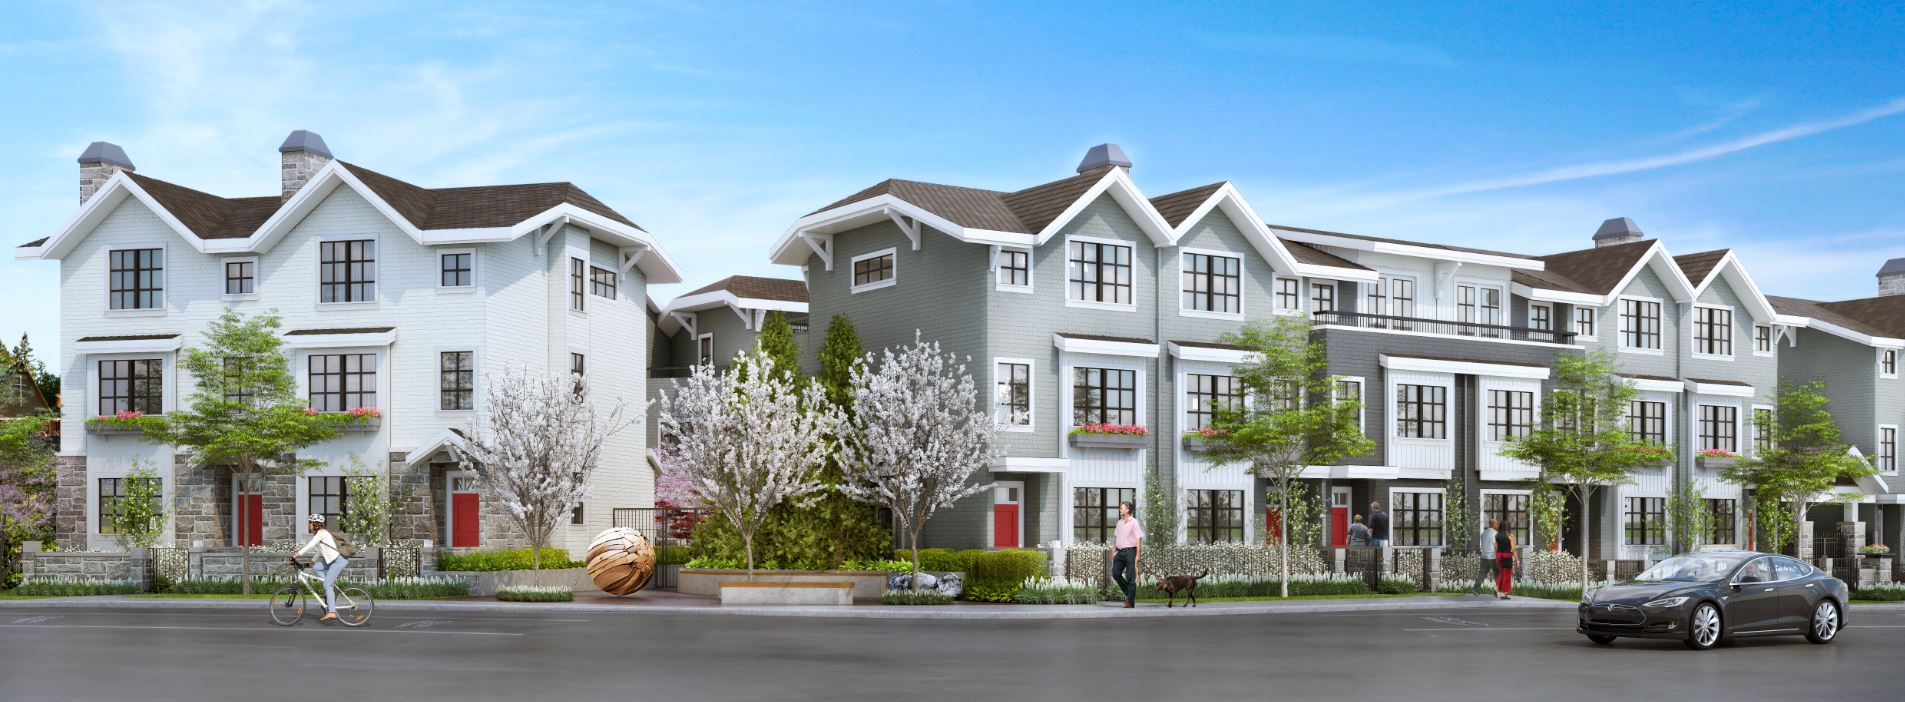 Edgemont Walk By Boffo Properties – Plans, Availability, Prices